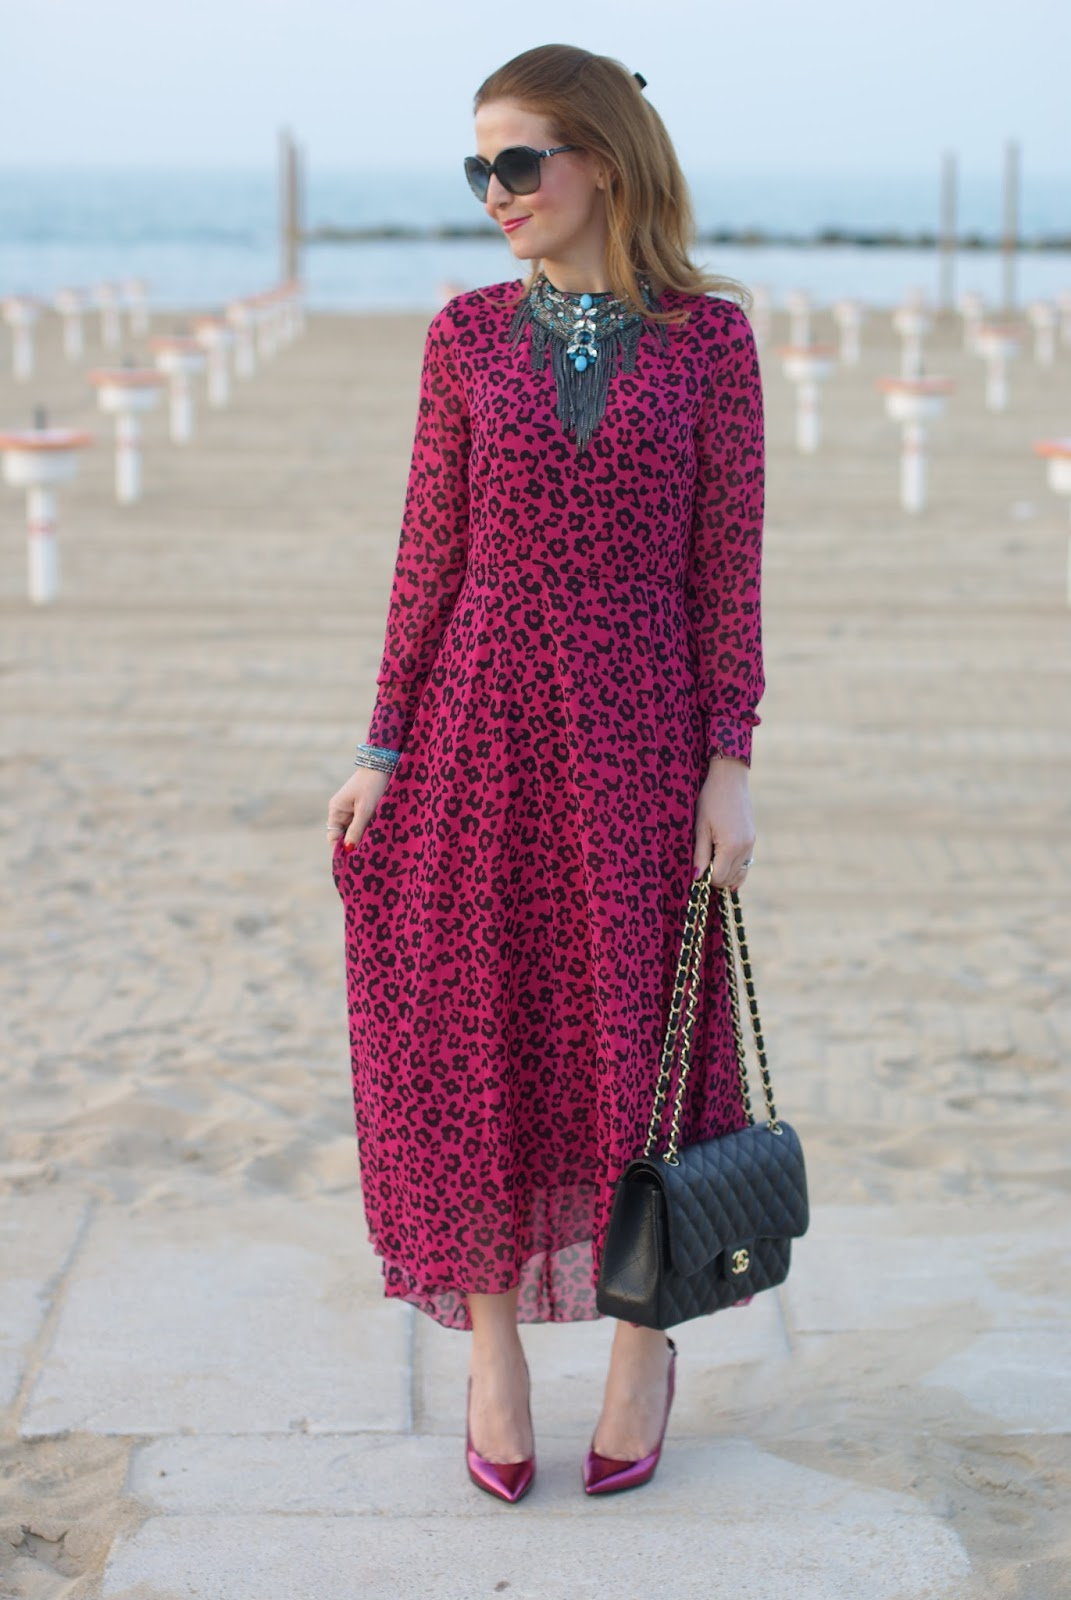 Leopard chiffon dress on Fashion and Cookies fashion blog